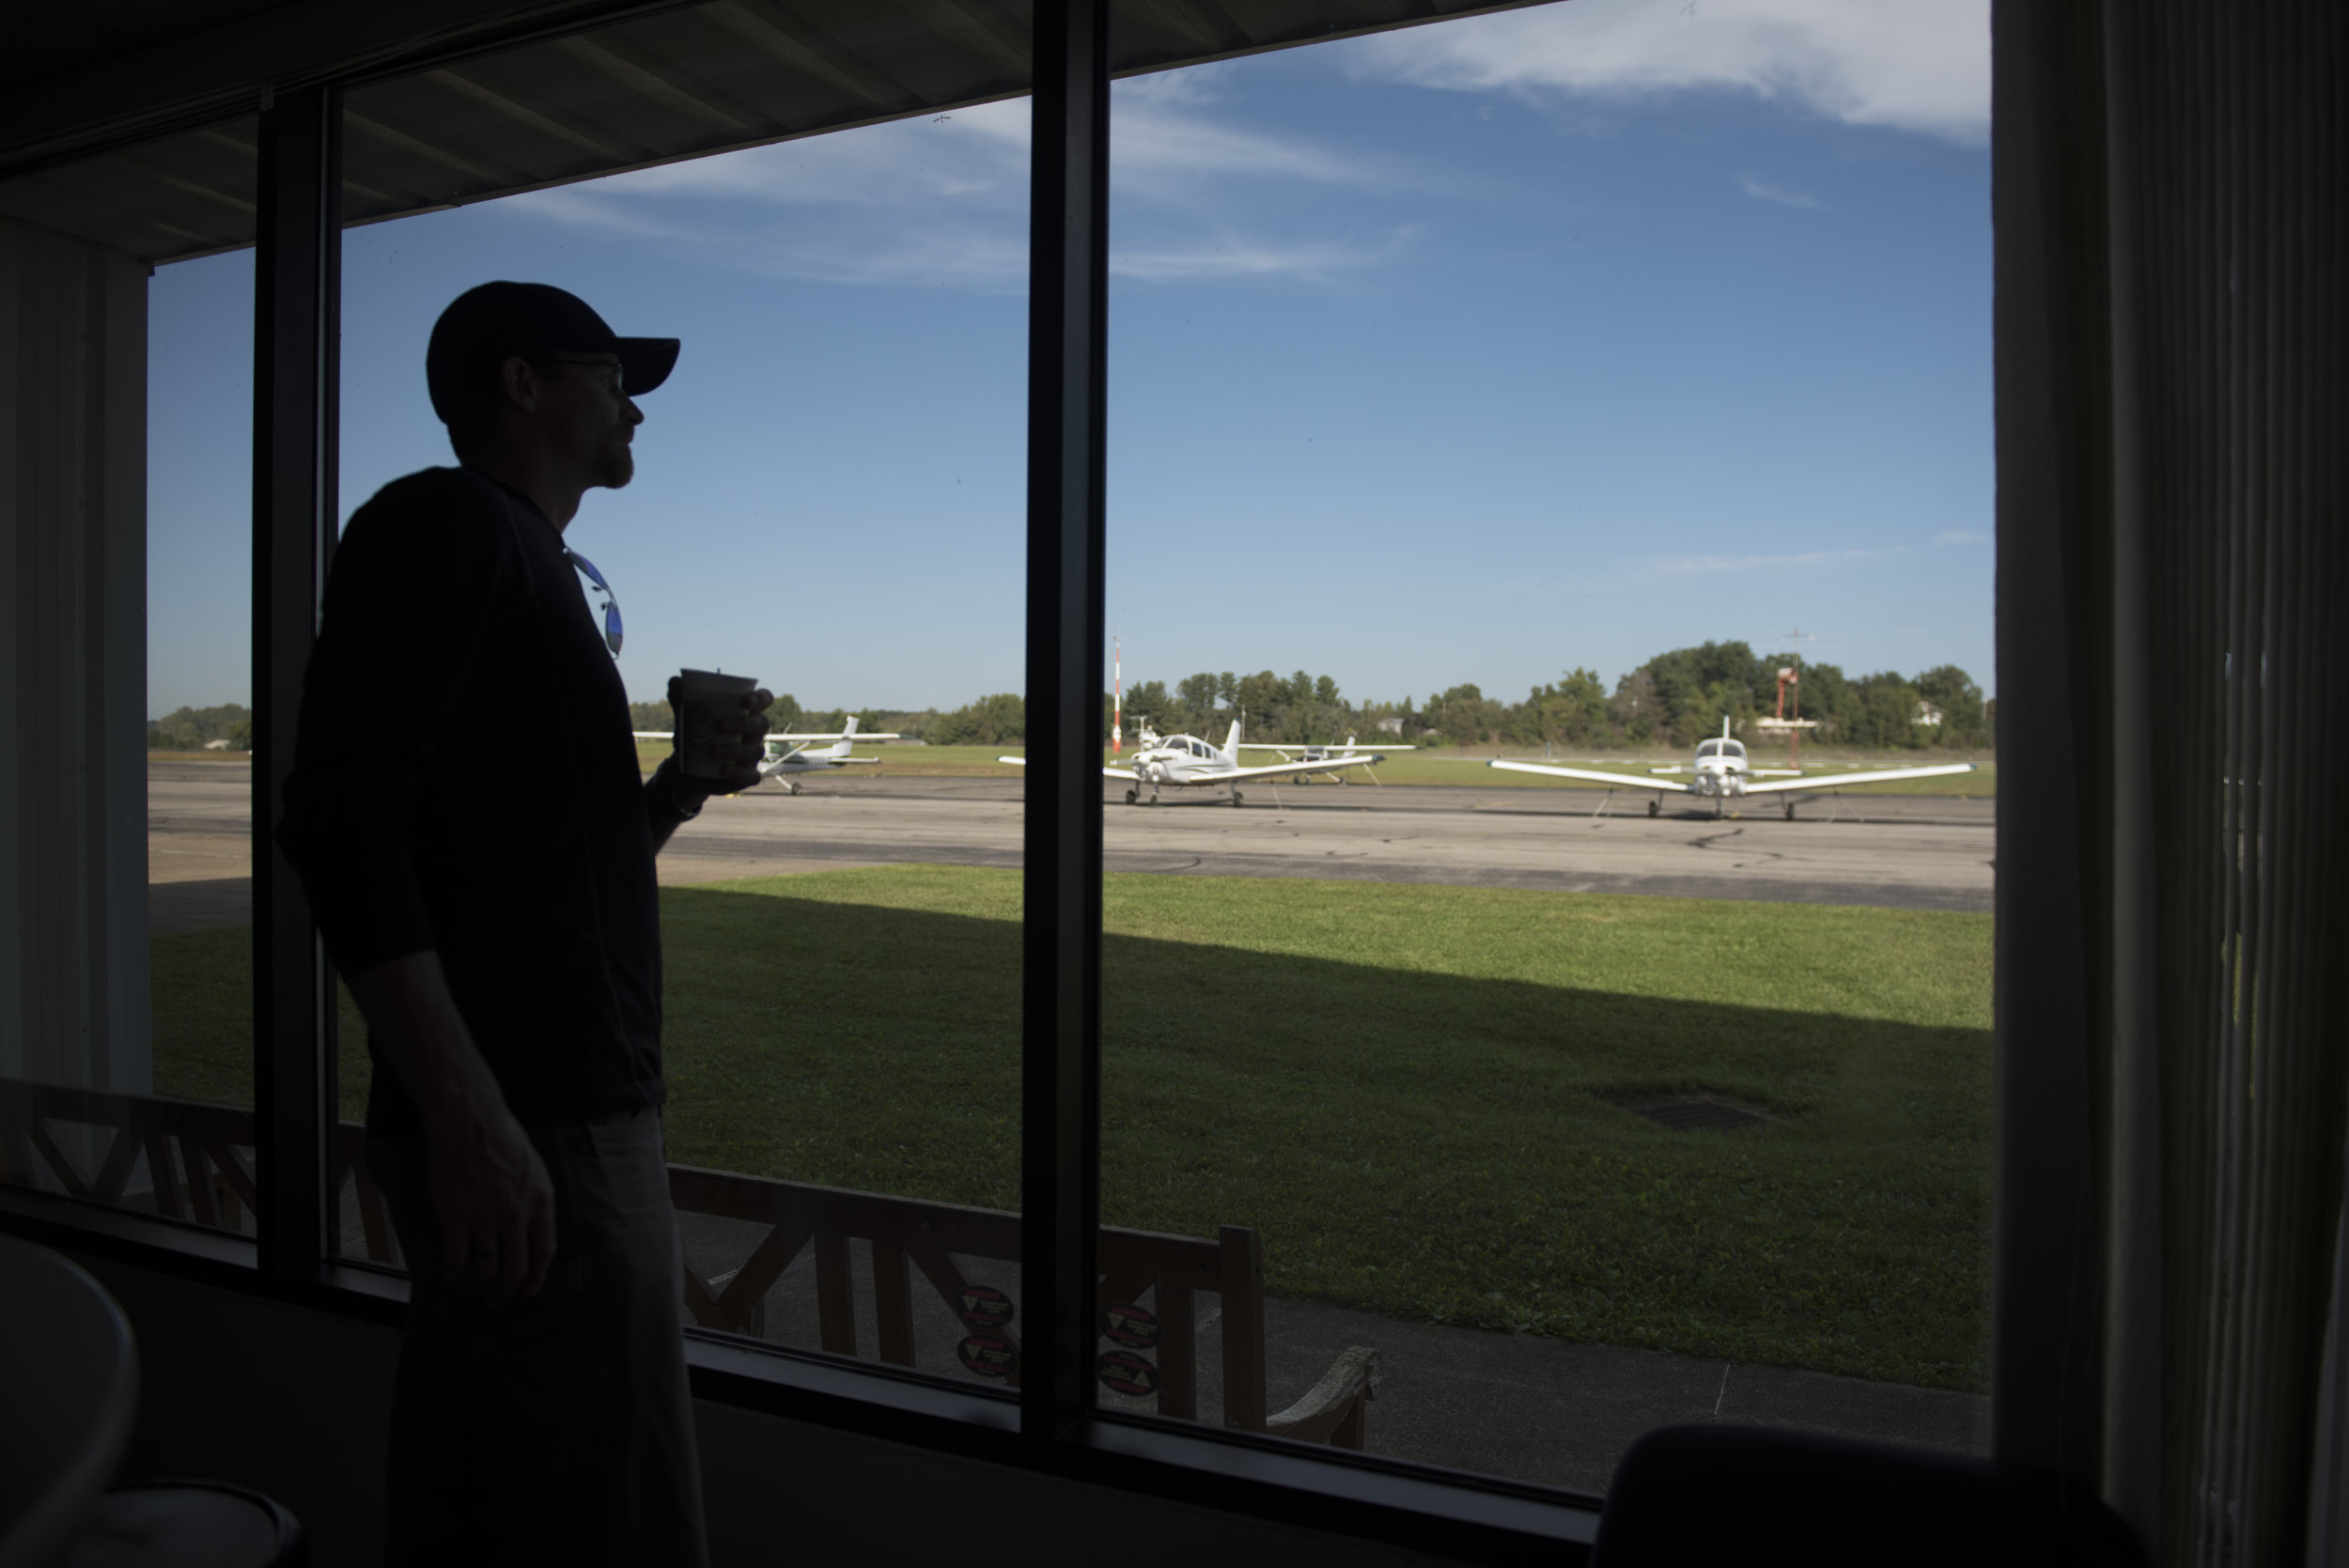 Flight instructor Eric Lee watches planes take off through the window of the training center at Gordon K. Bush airport on Sept. 24, 2017.